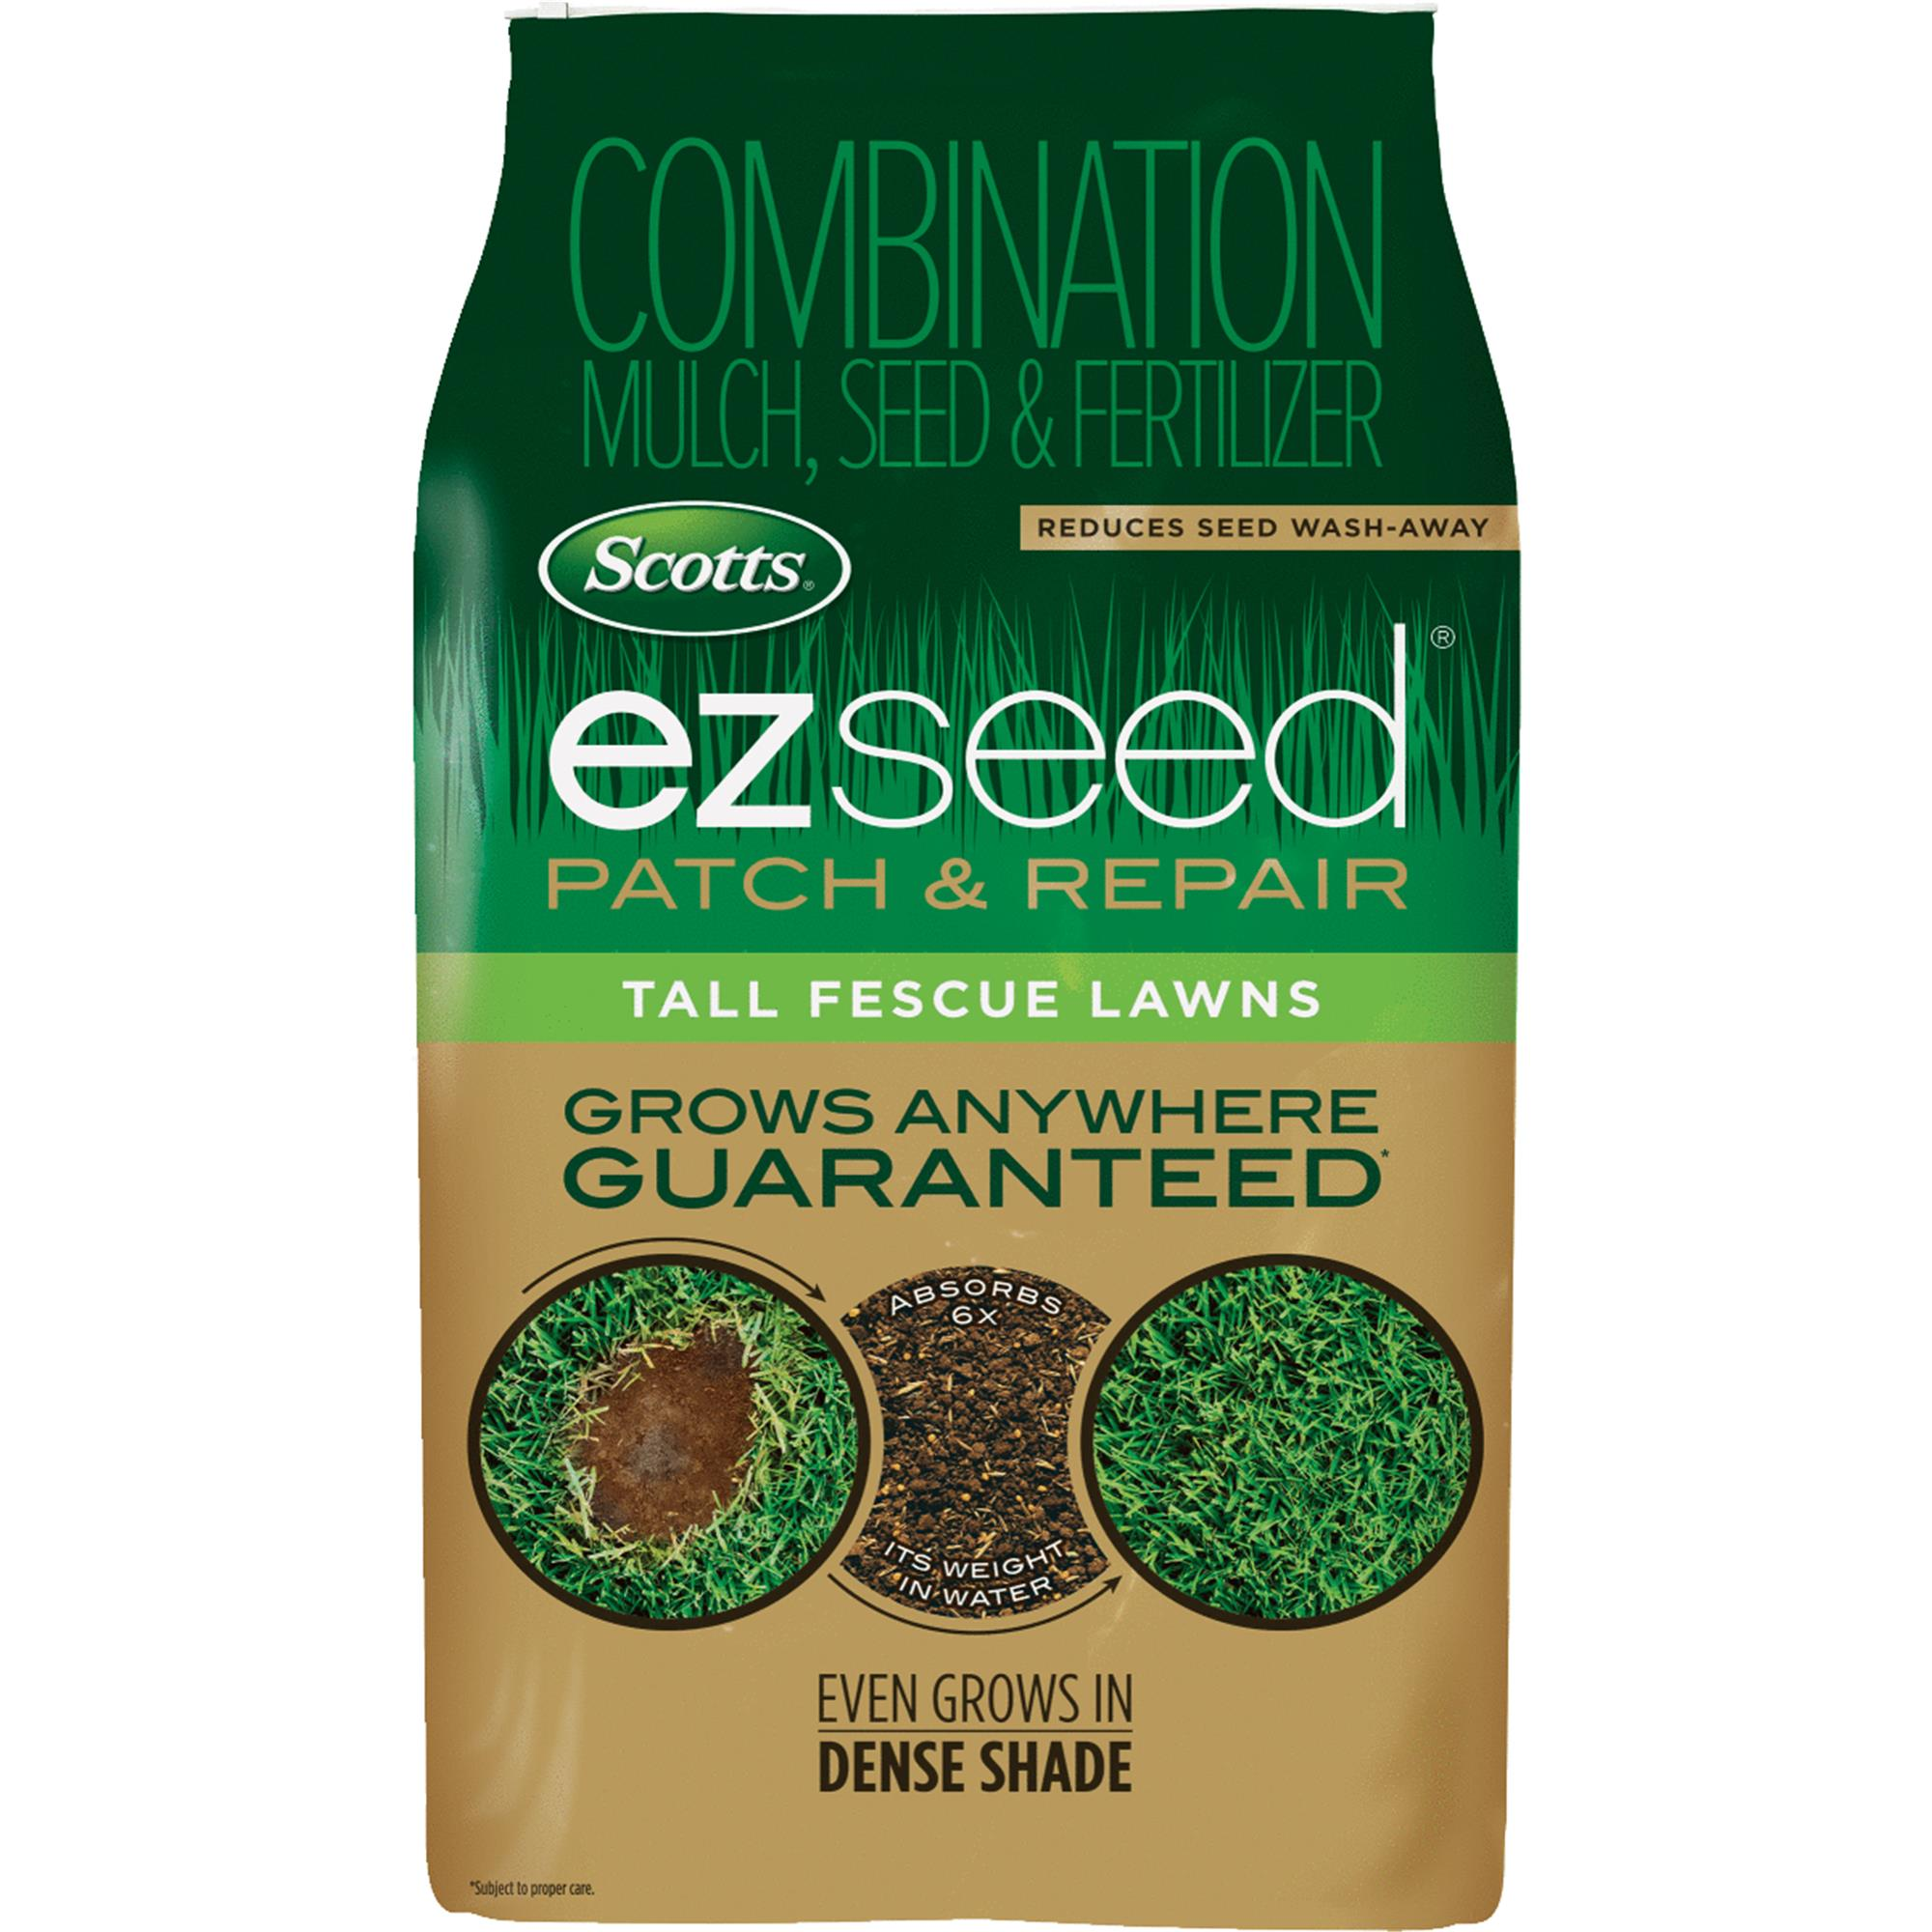 Scotts EZ Seed Tall Fescue Grass Patch & Repair